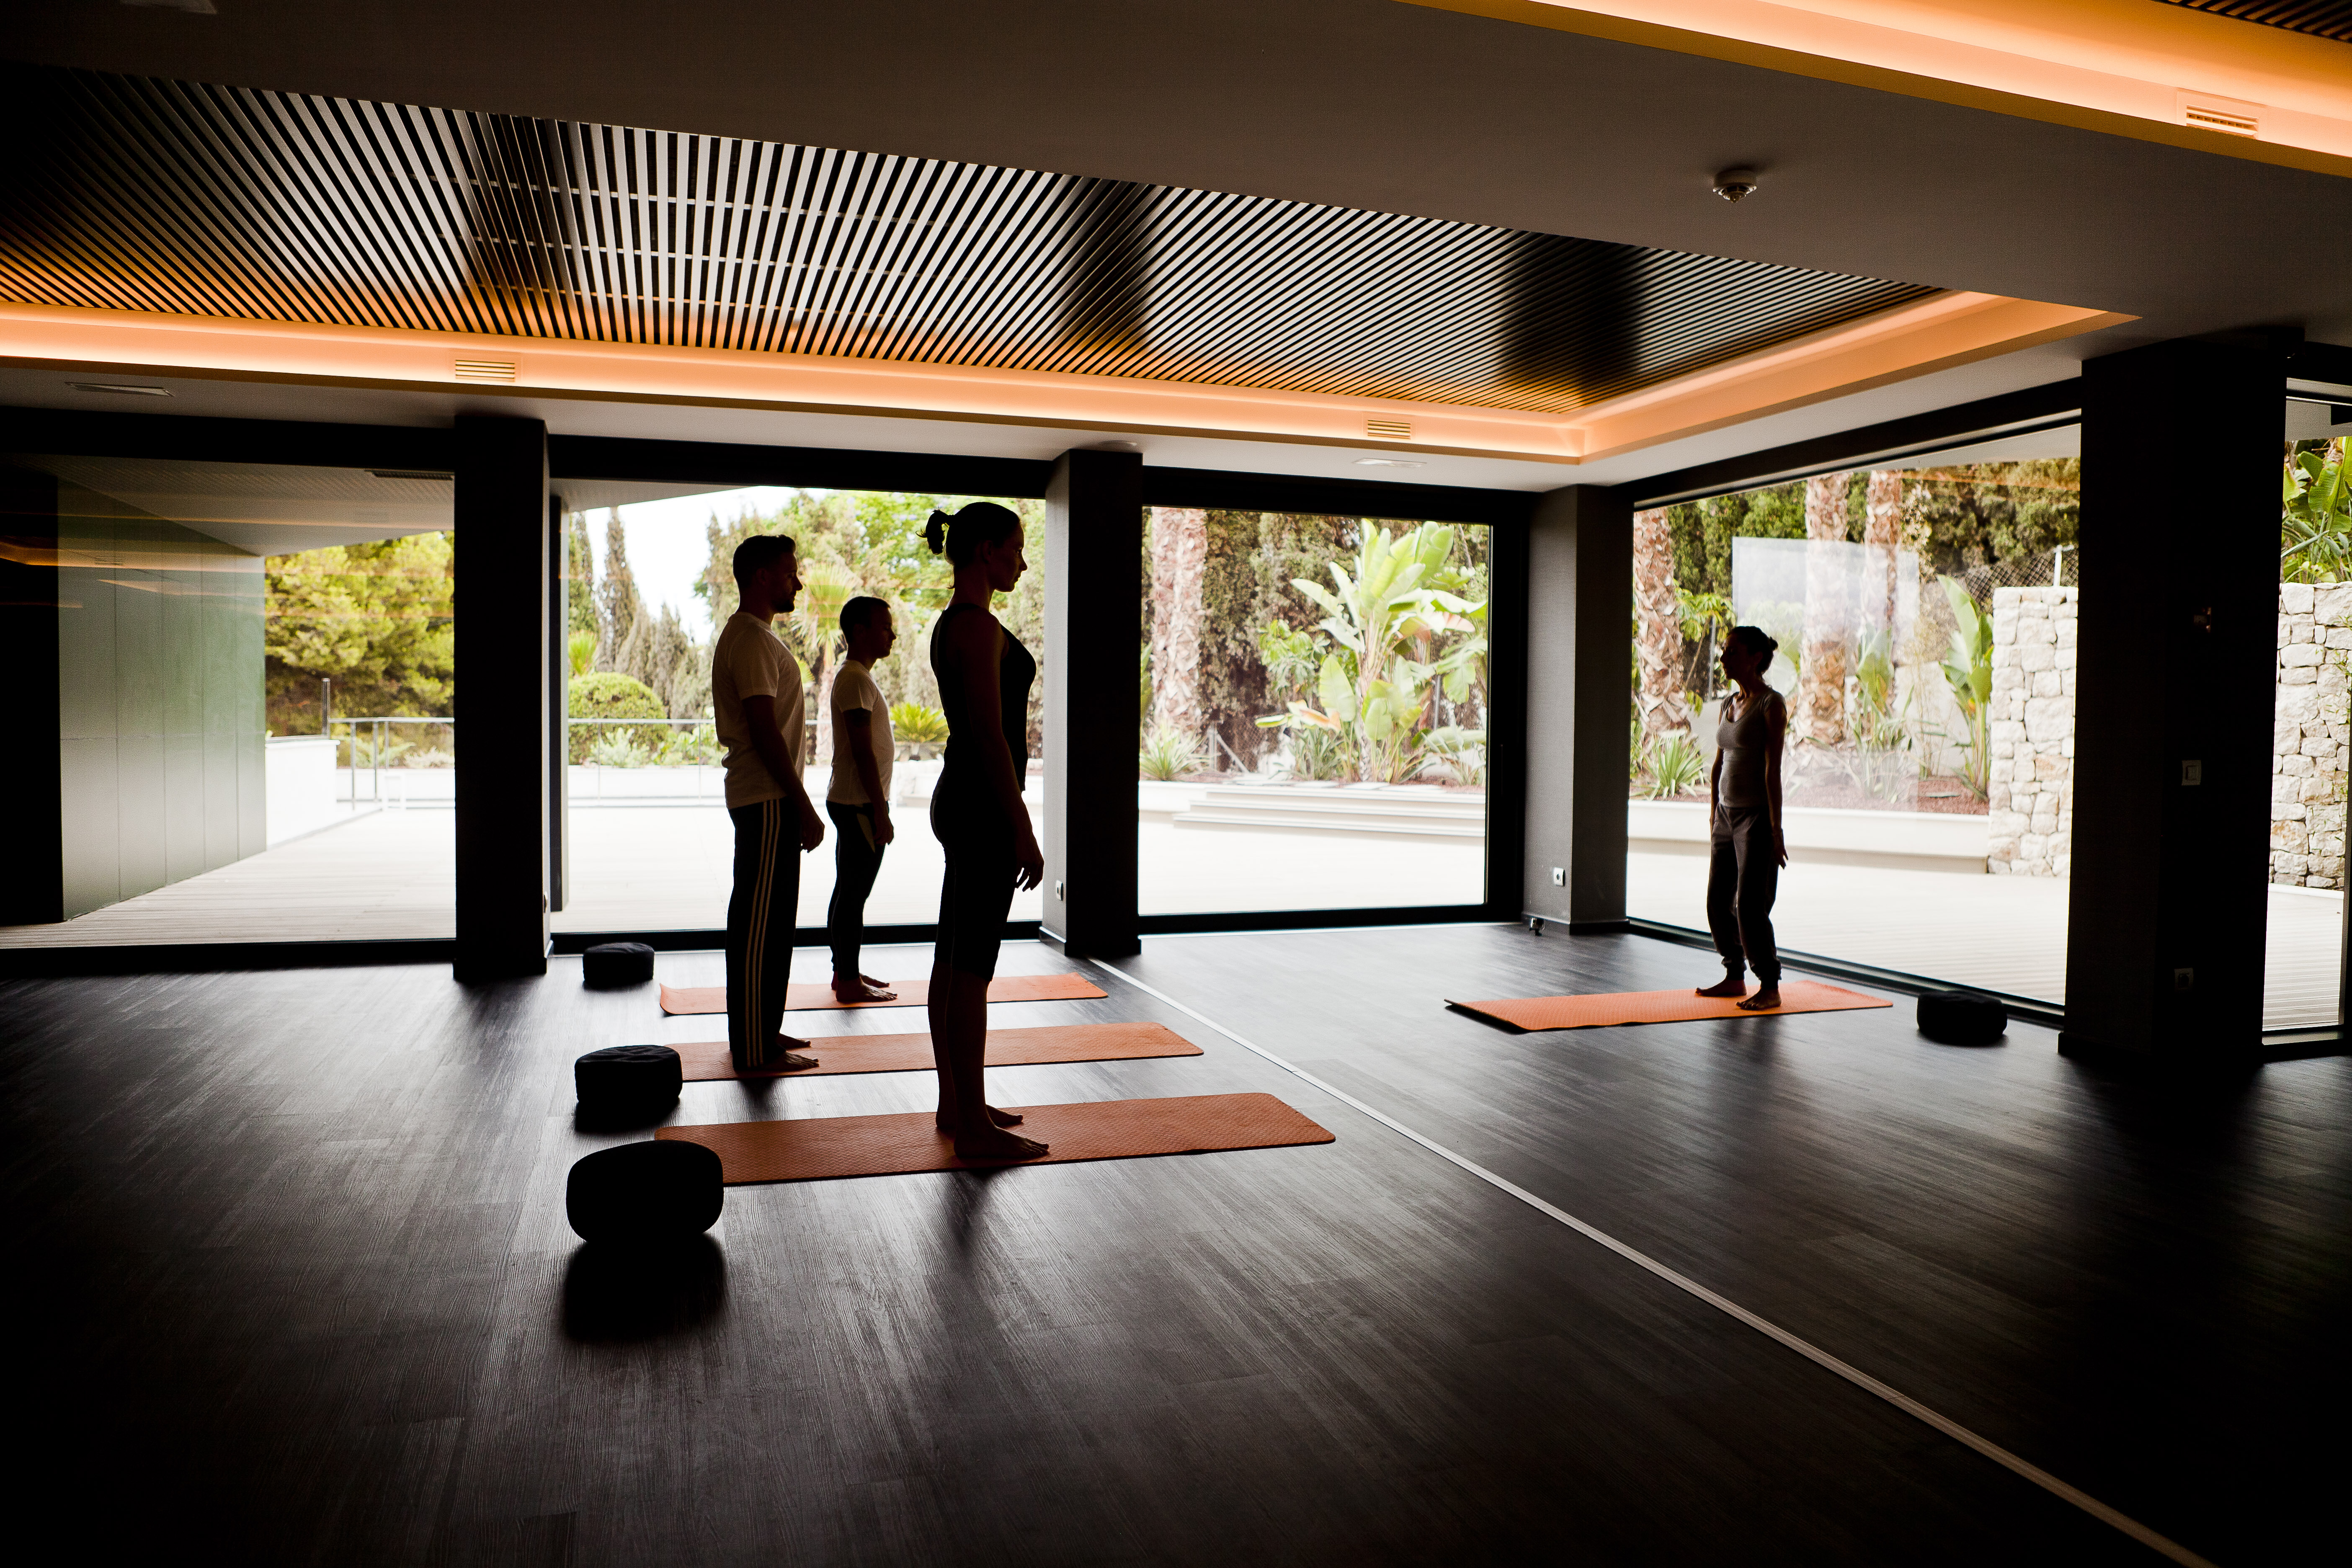 Sha wellness clinic launches a new building spa in spain